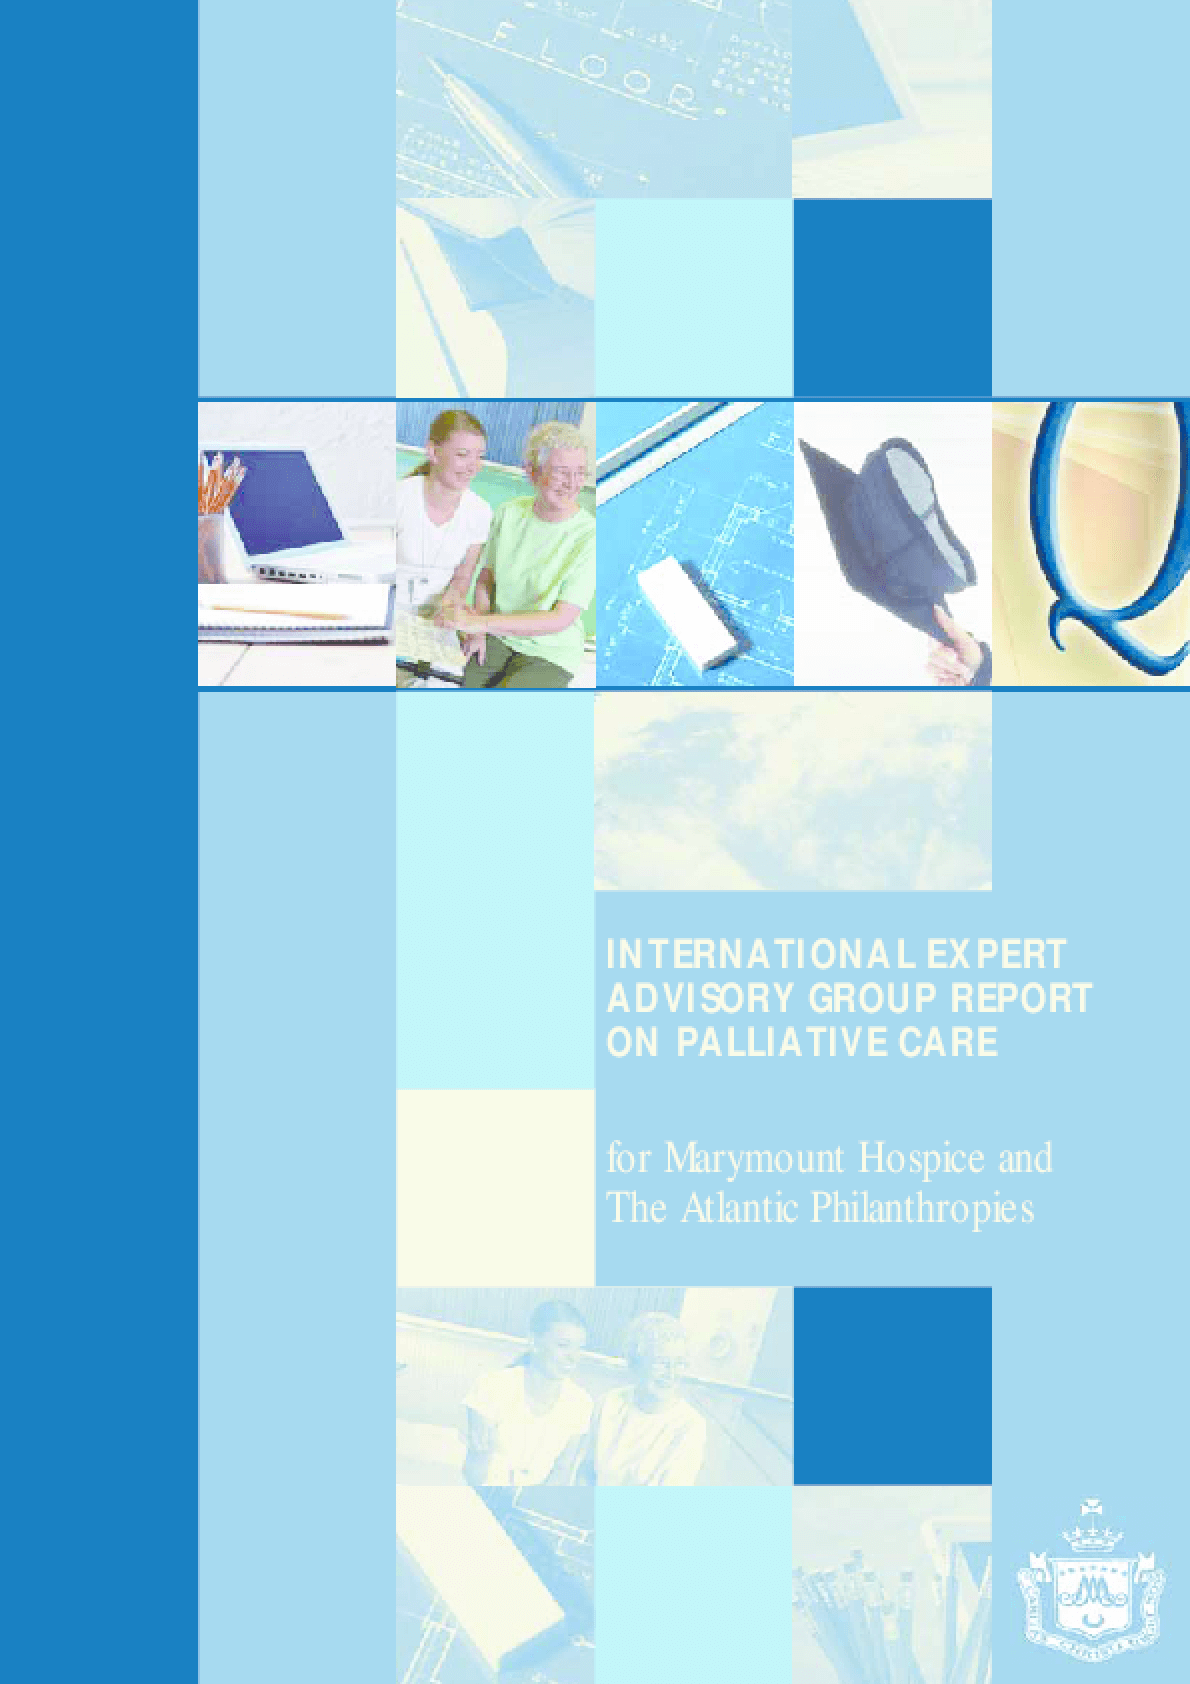 International Expert Advisory Group Report on Palliative Care